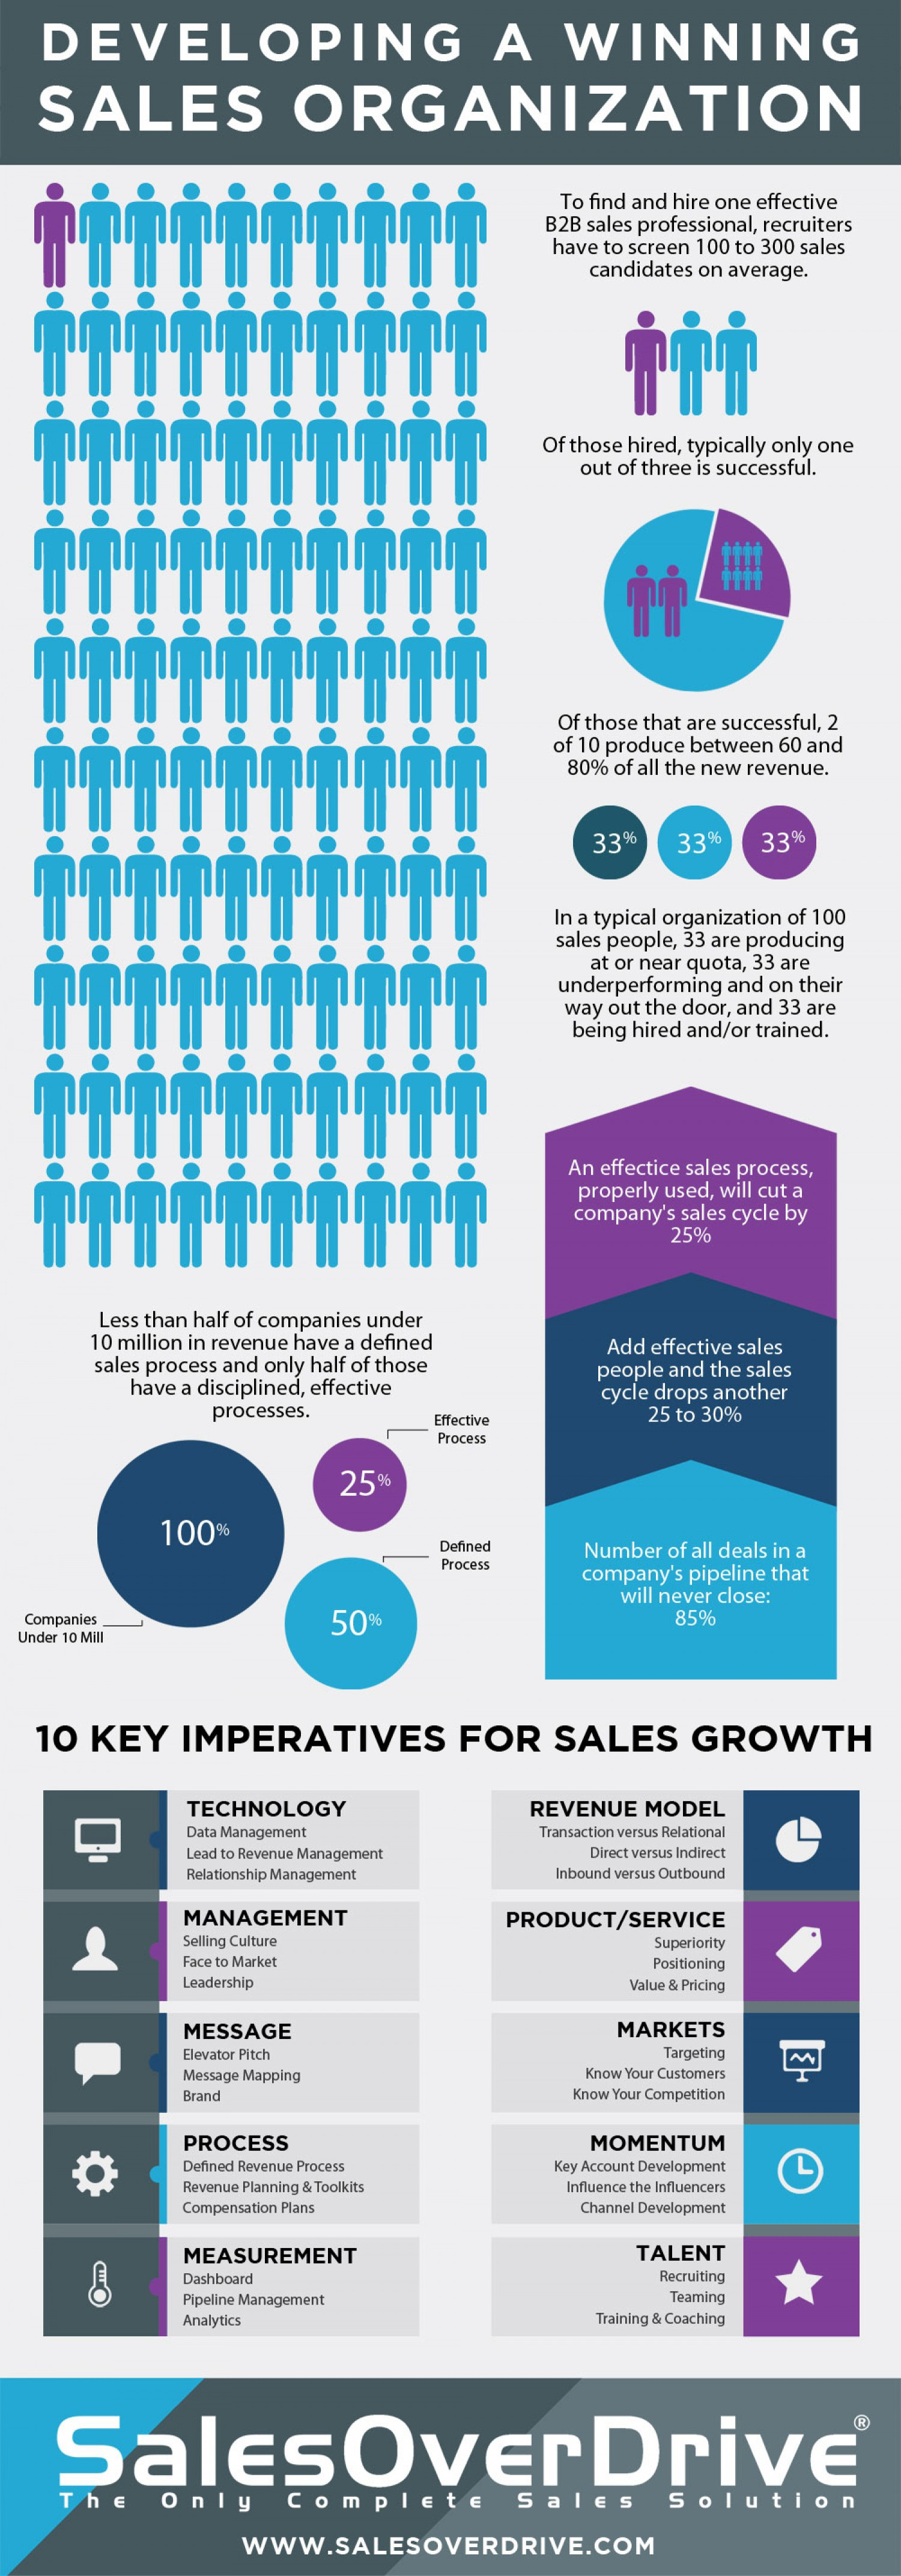 Sales-Consulting-Company-Infographic